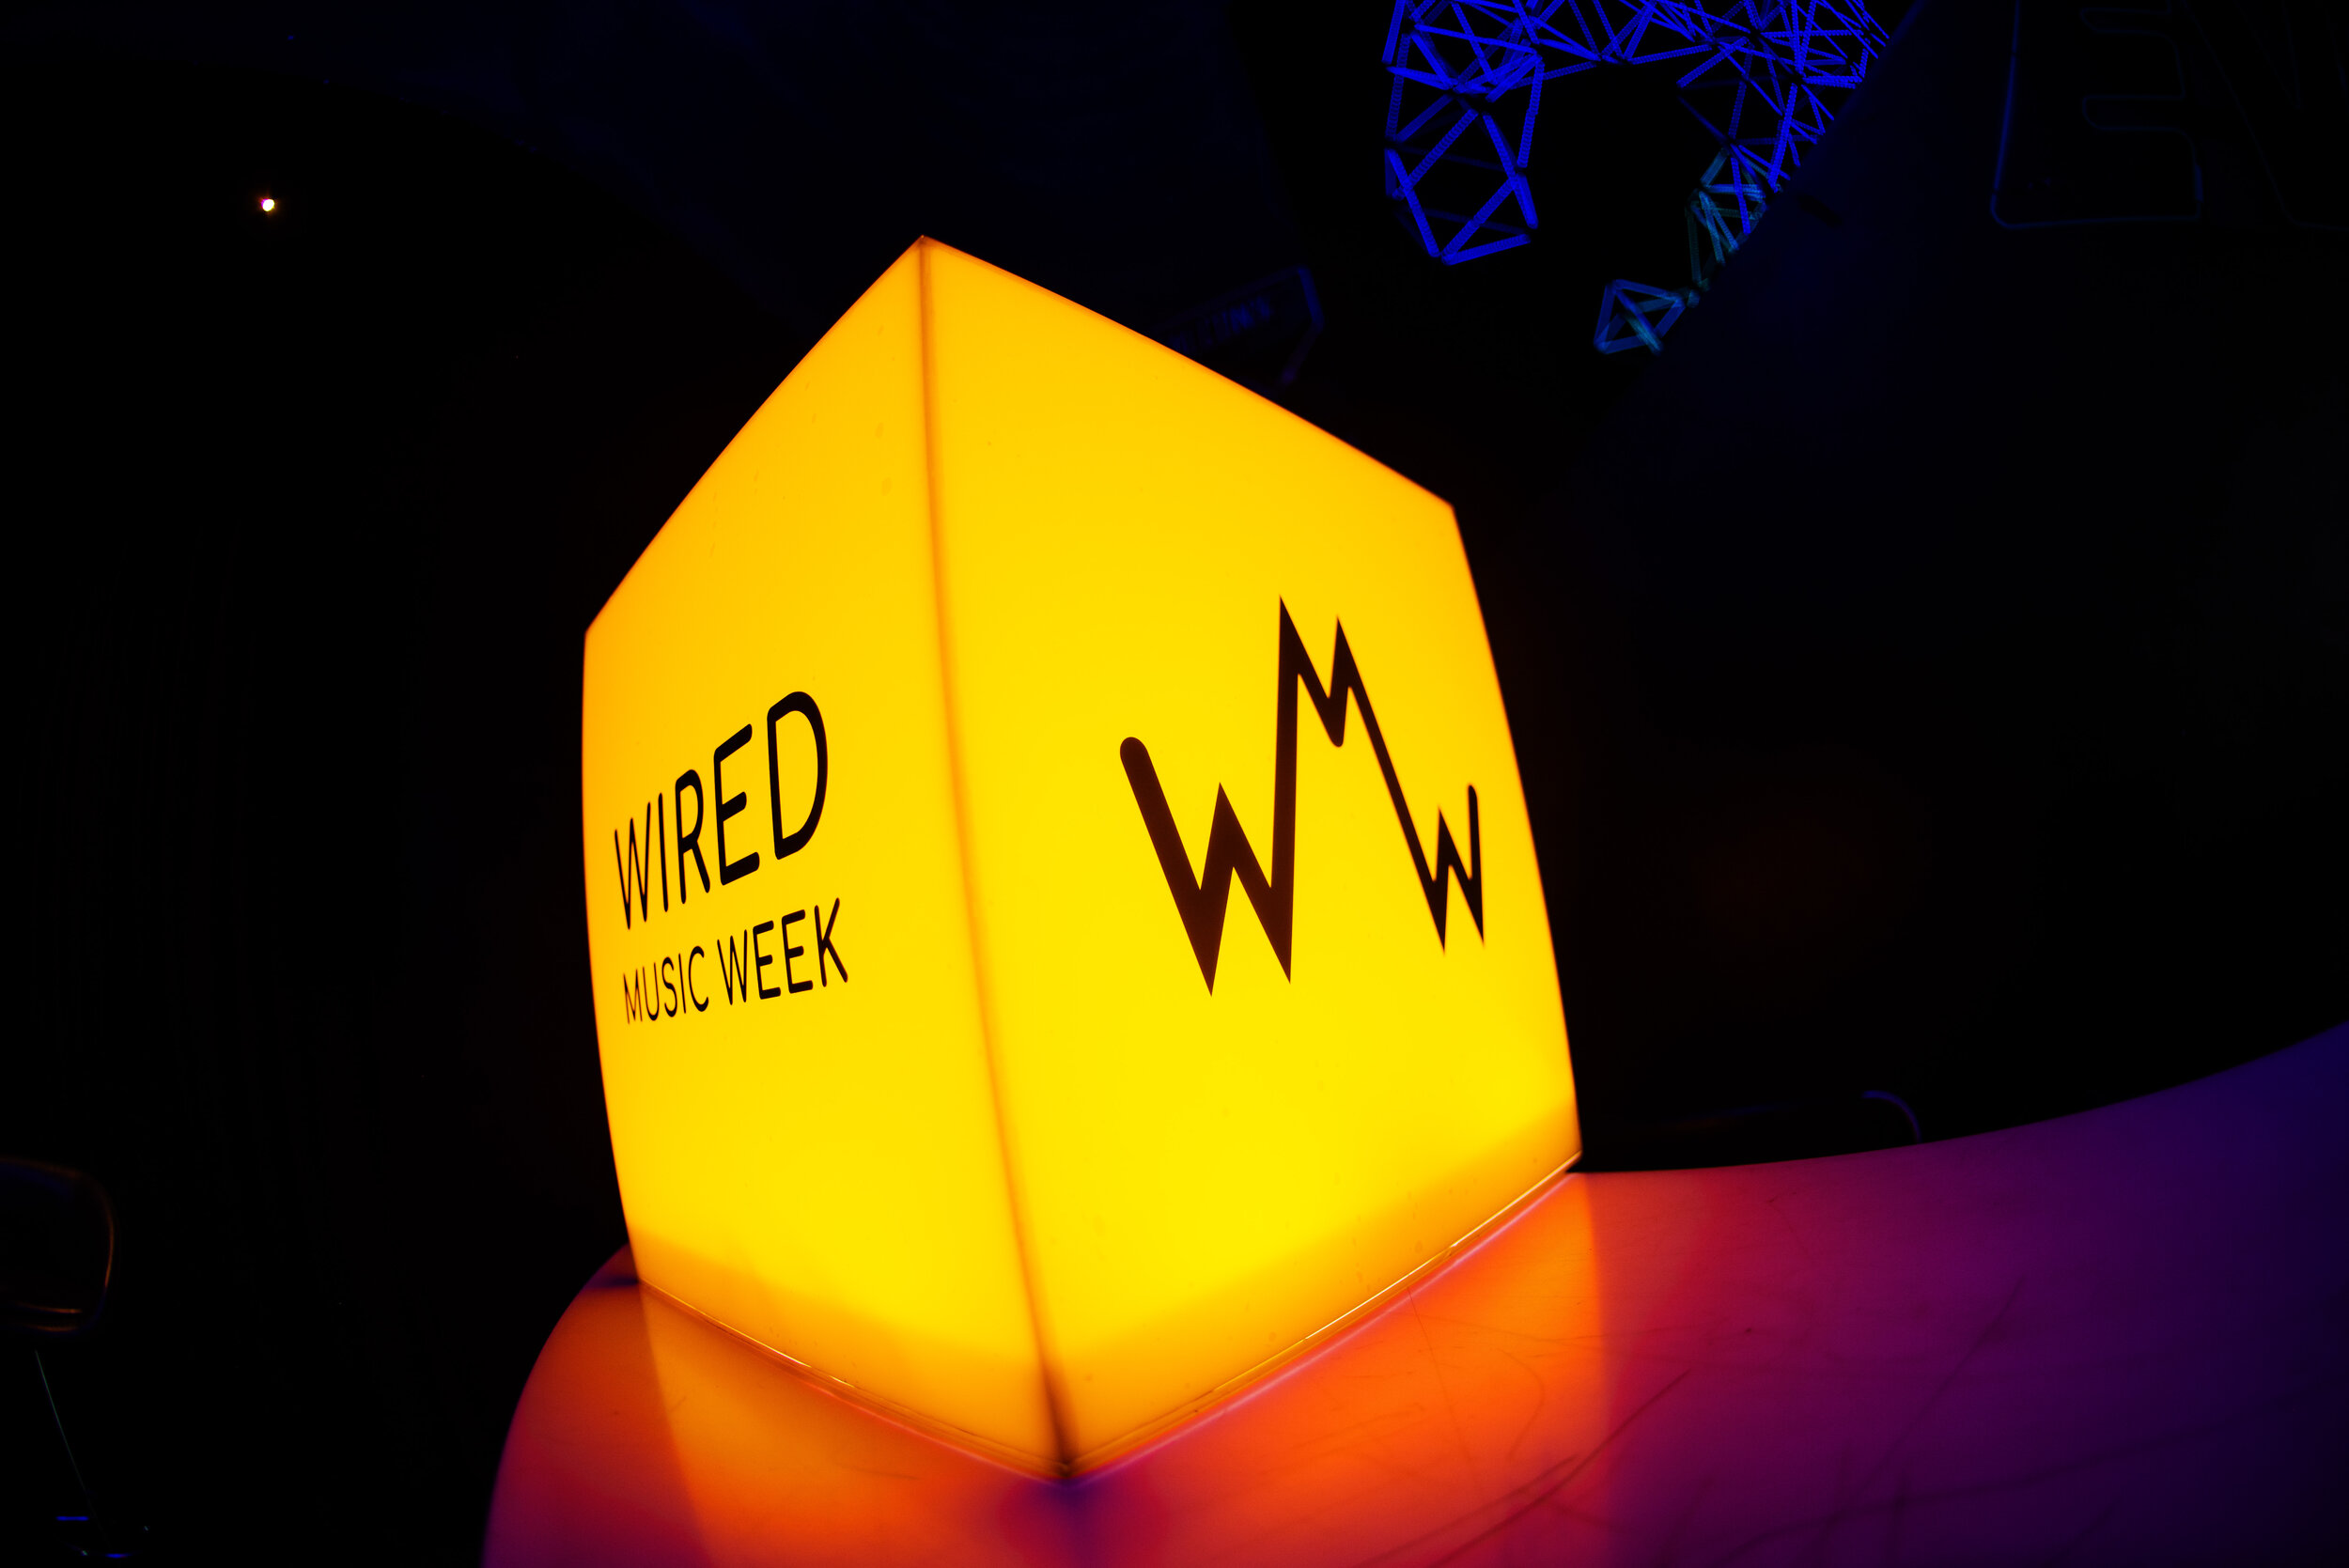 Wired Music Week 2020